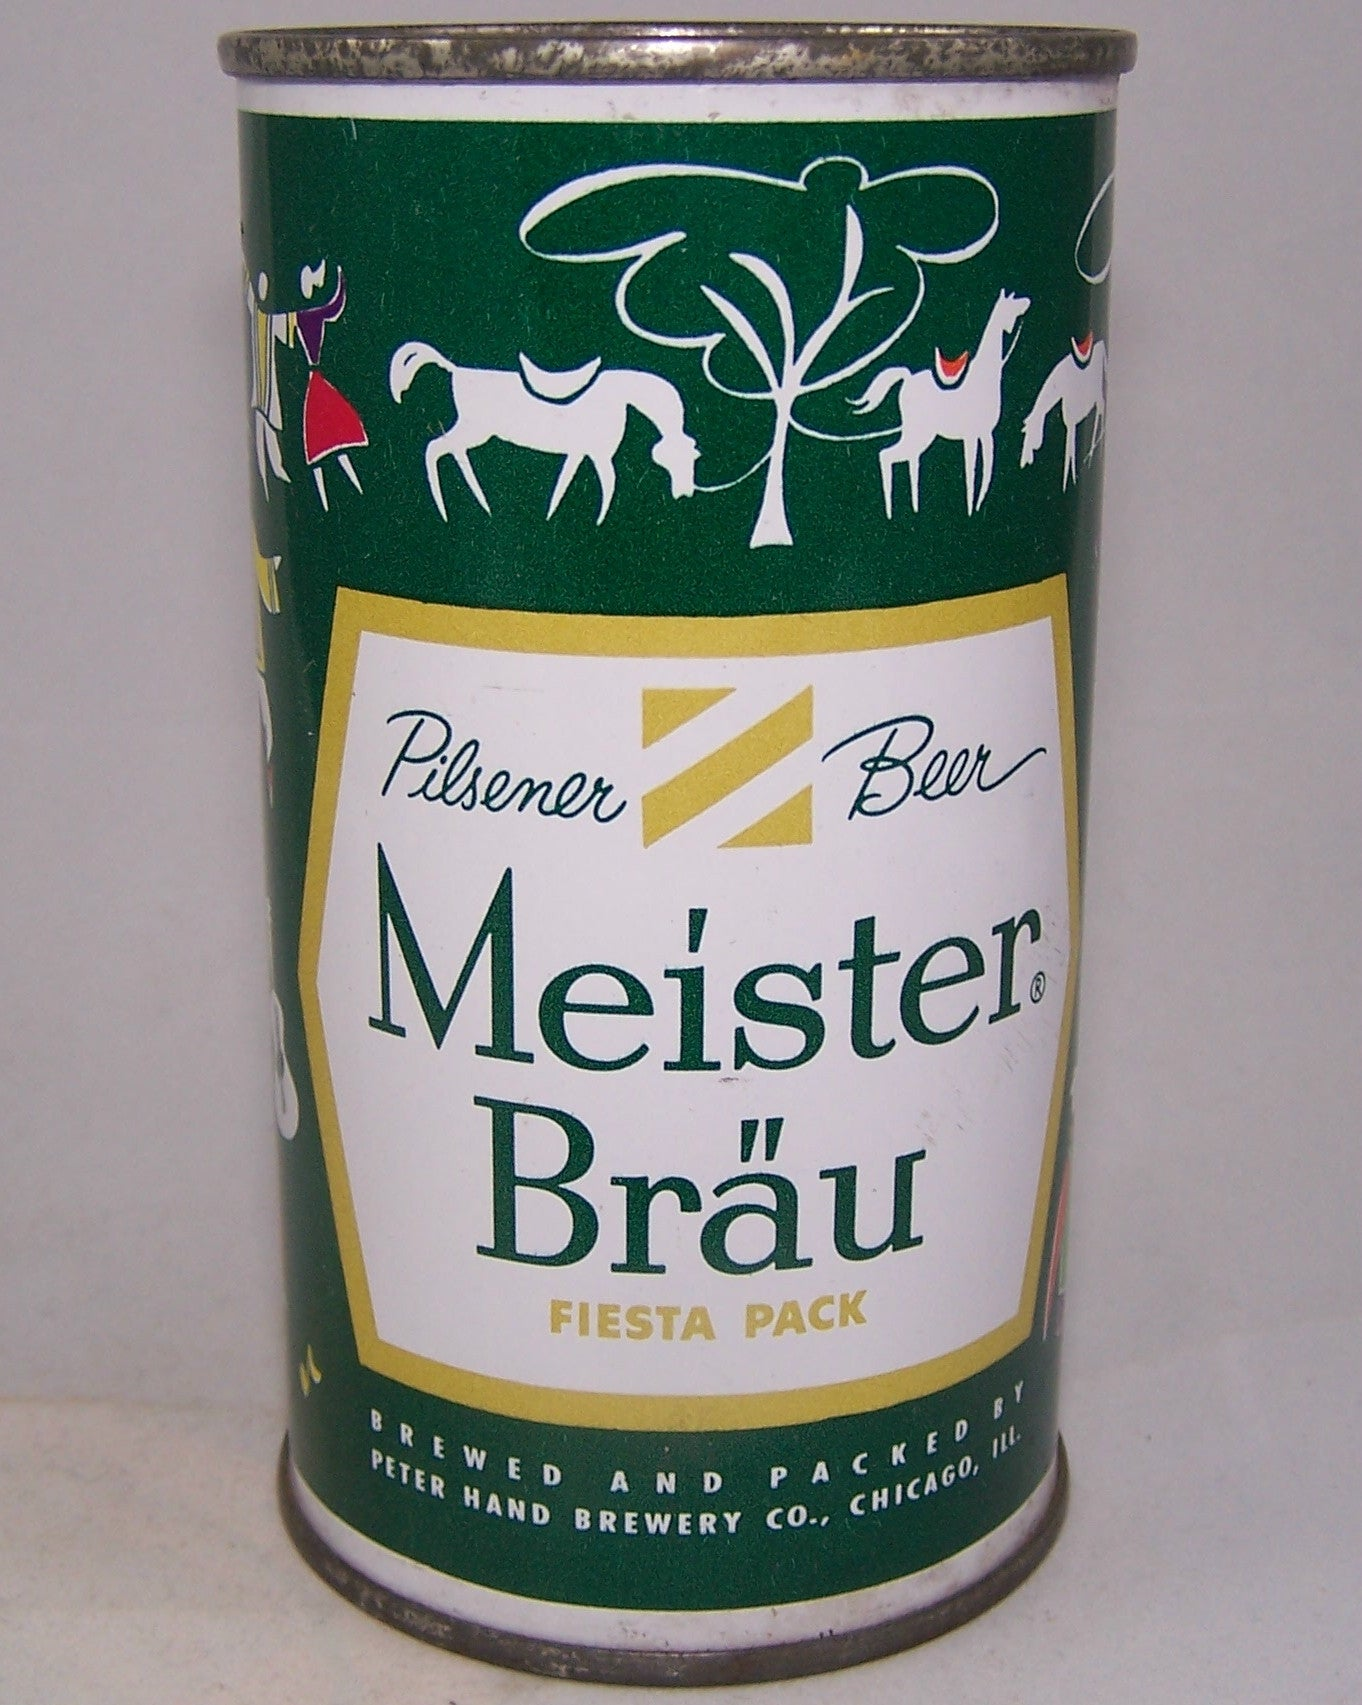 Meister Brau Beer, Country Can, (Gypsies) USBC 97-21, Grade 1/ 1+ Sold on 10/24/15